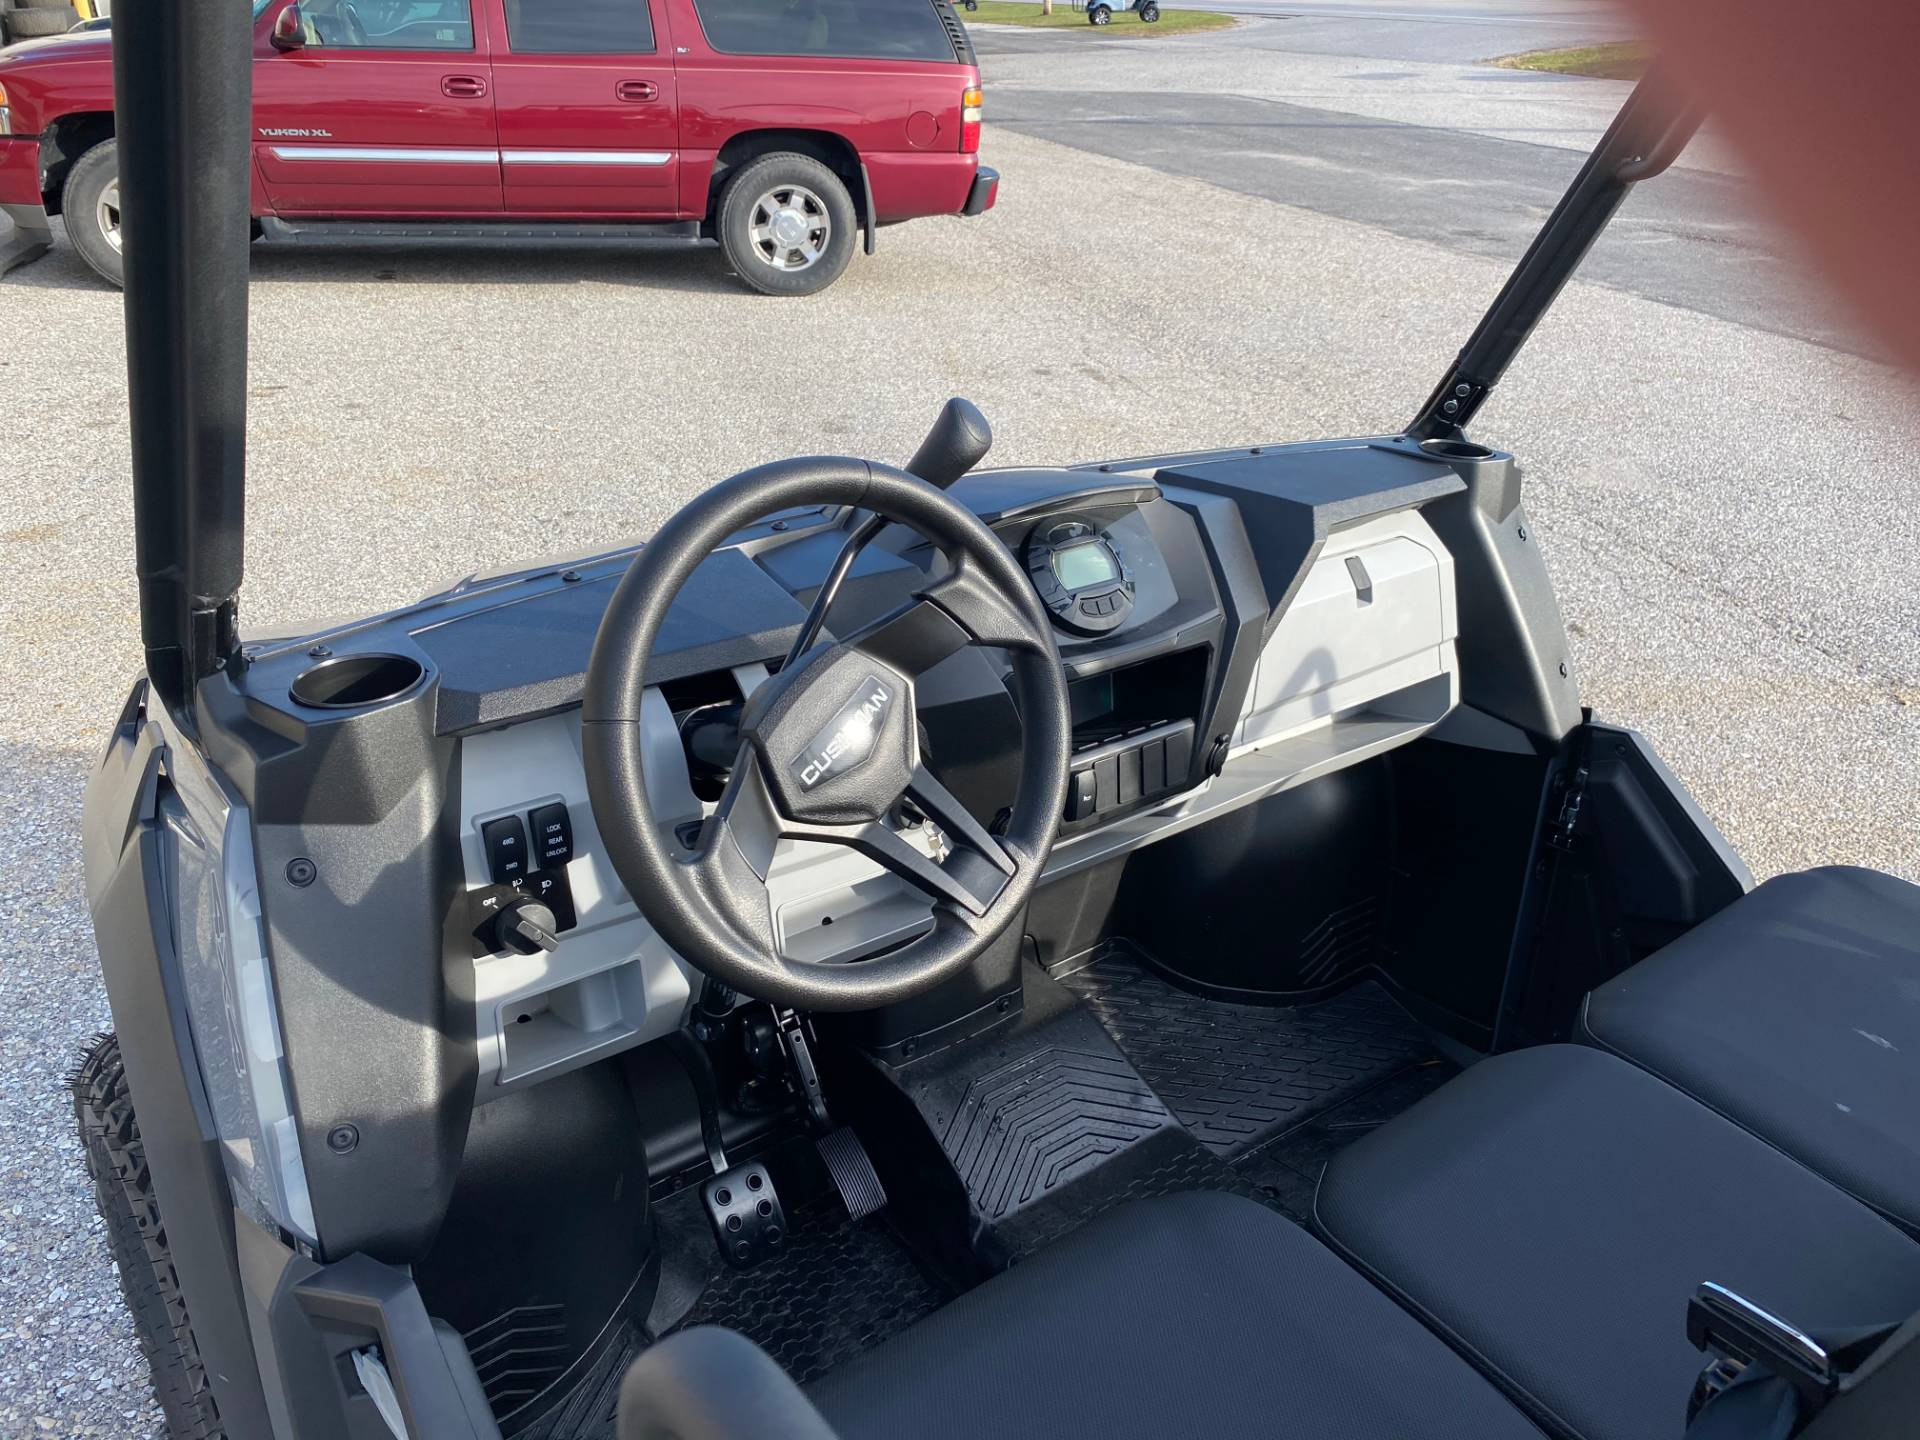 2020 Cushman HAULER 4X4 EFI in New Oxford, Pennsylvania - Photo 4